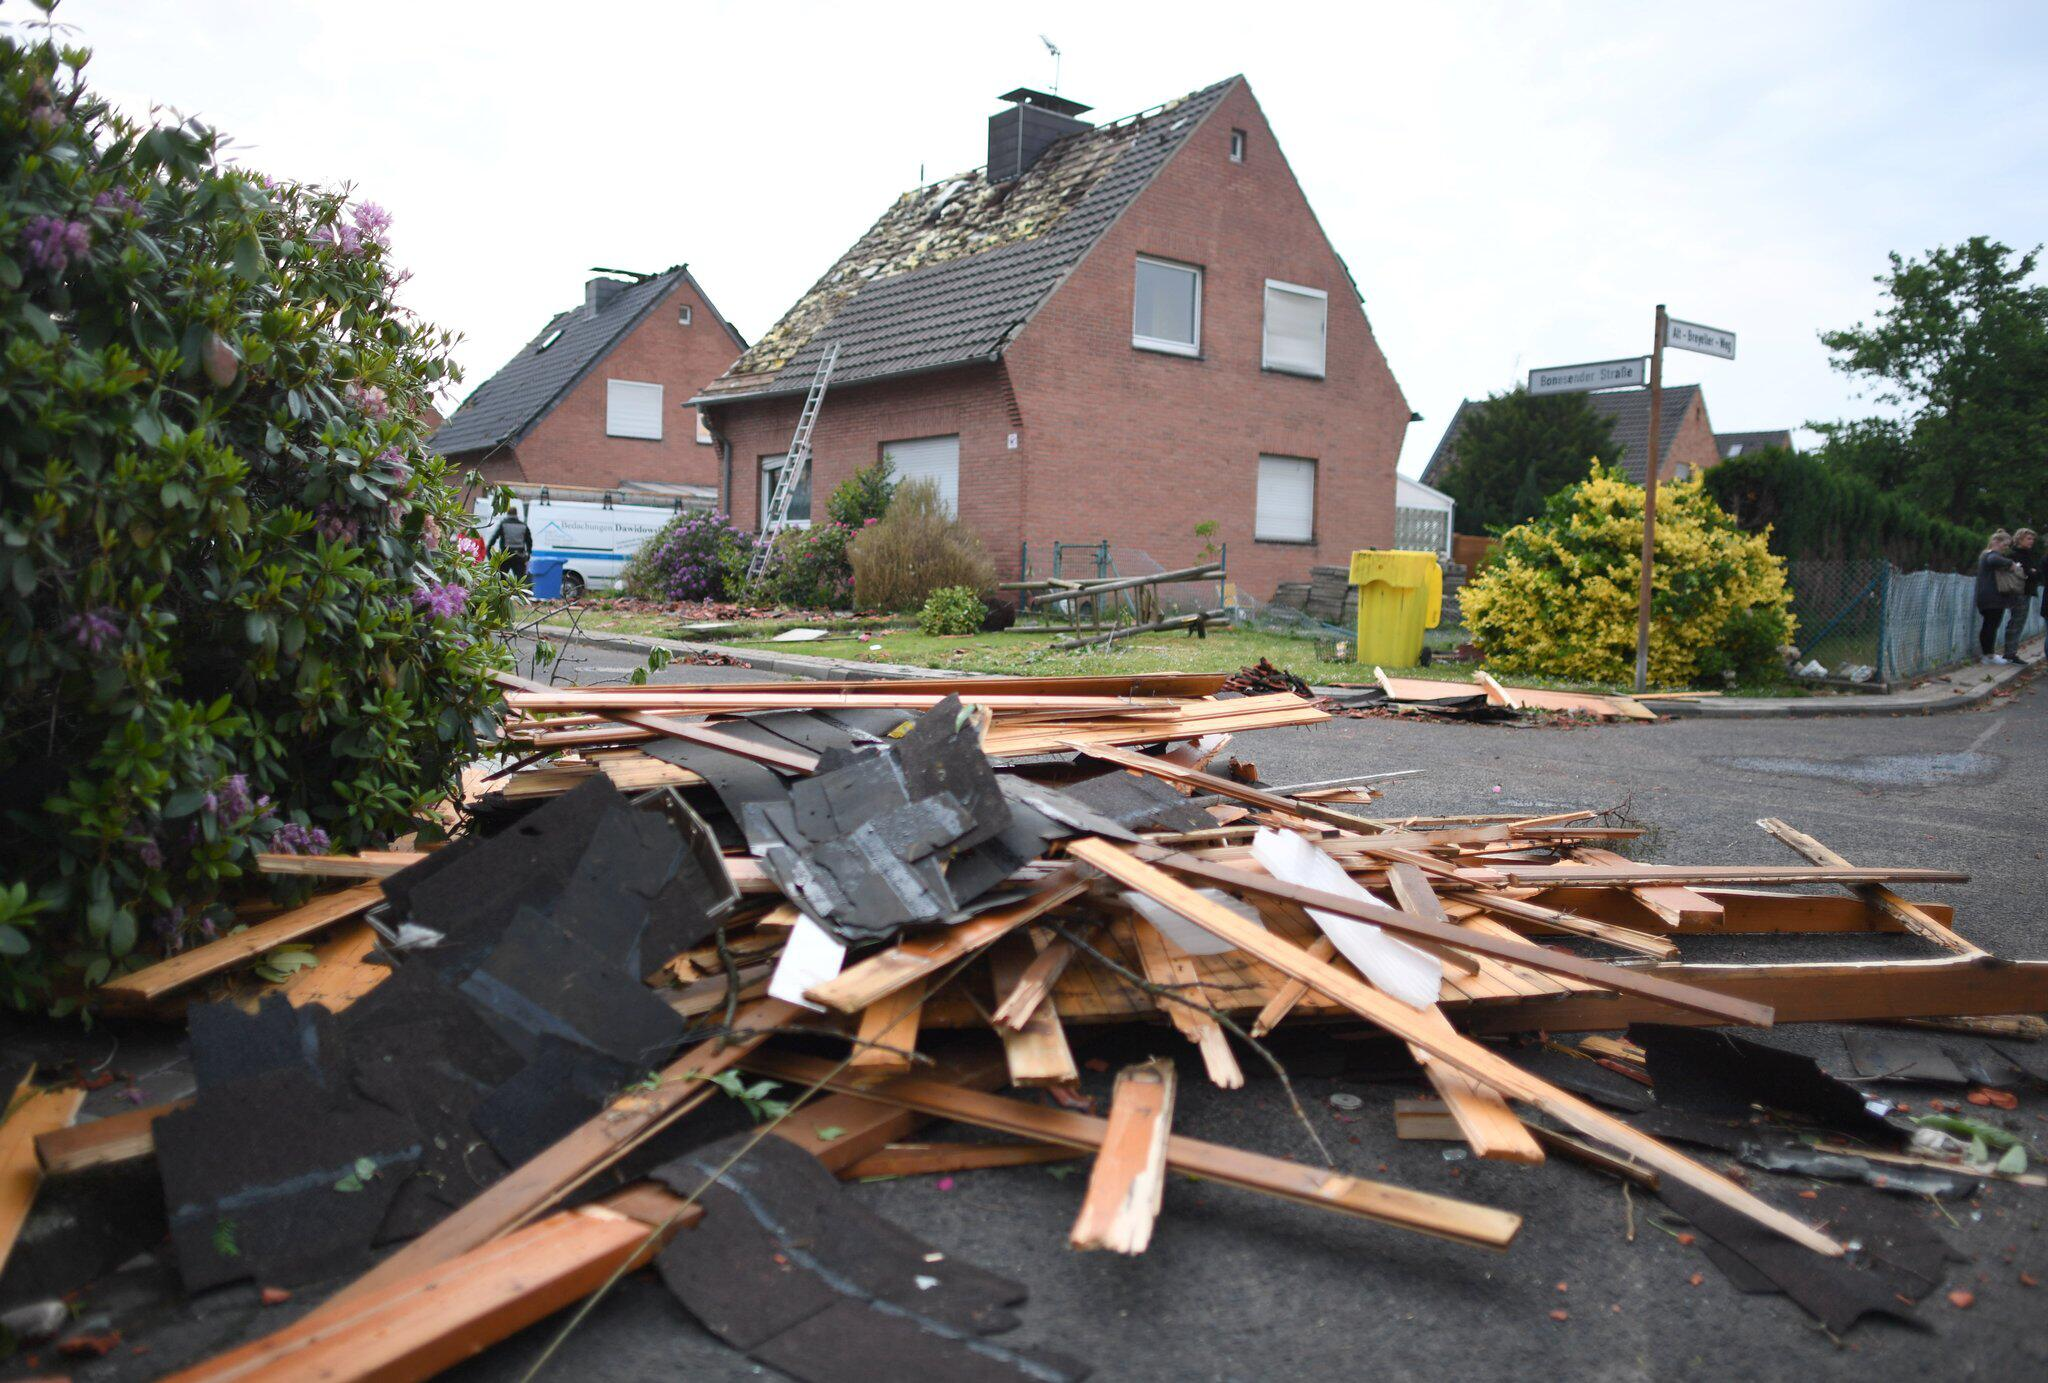 Bild zu Tornado in the lower Rhine region